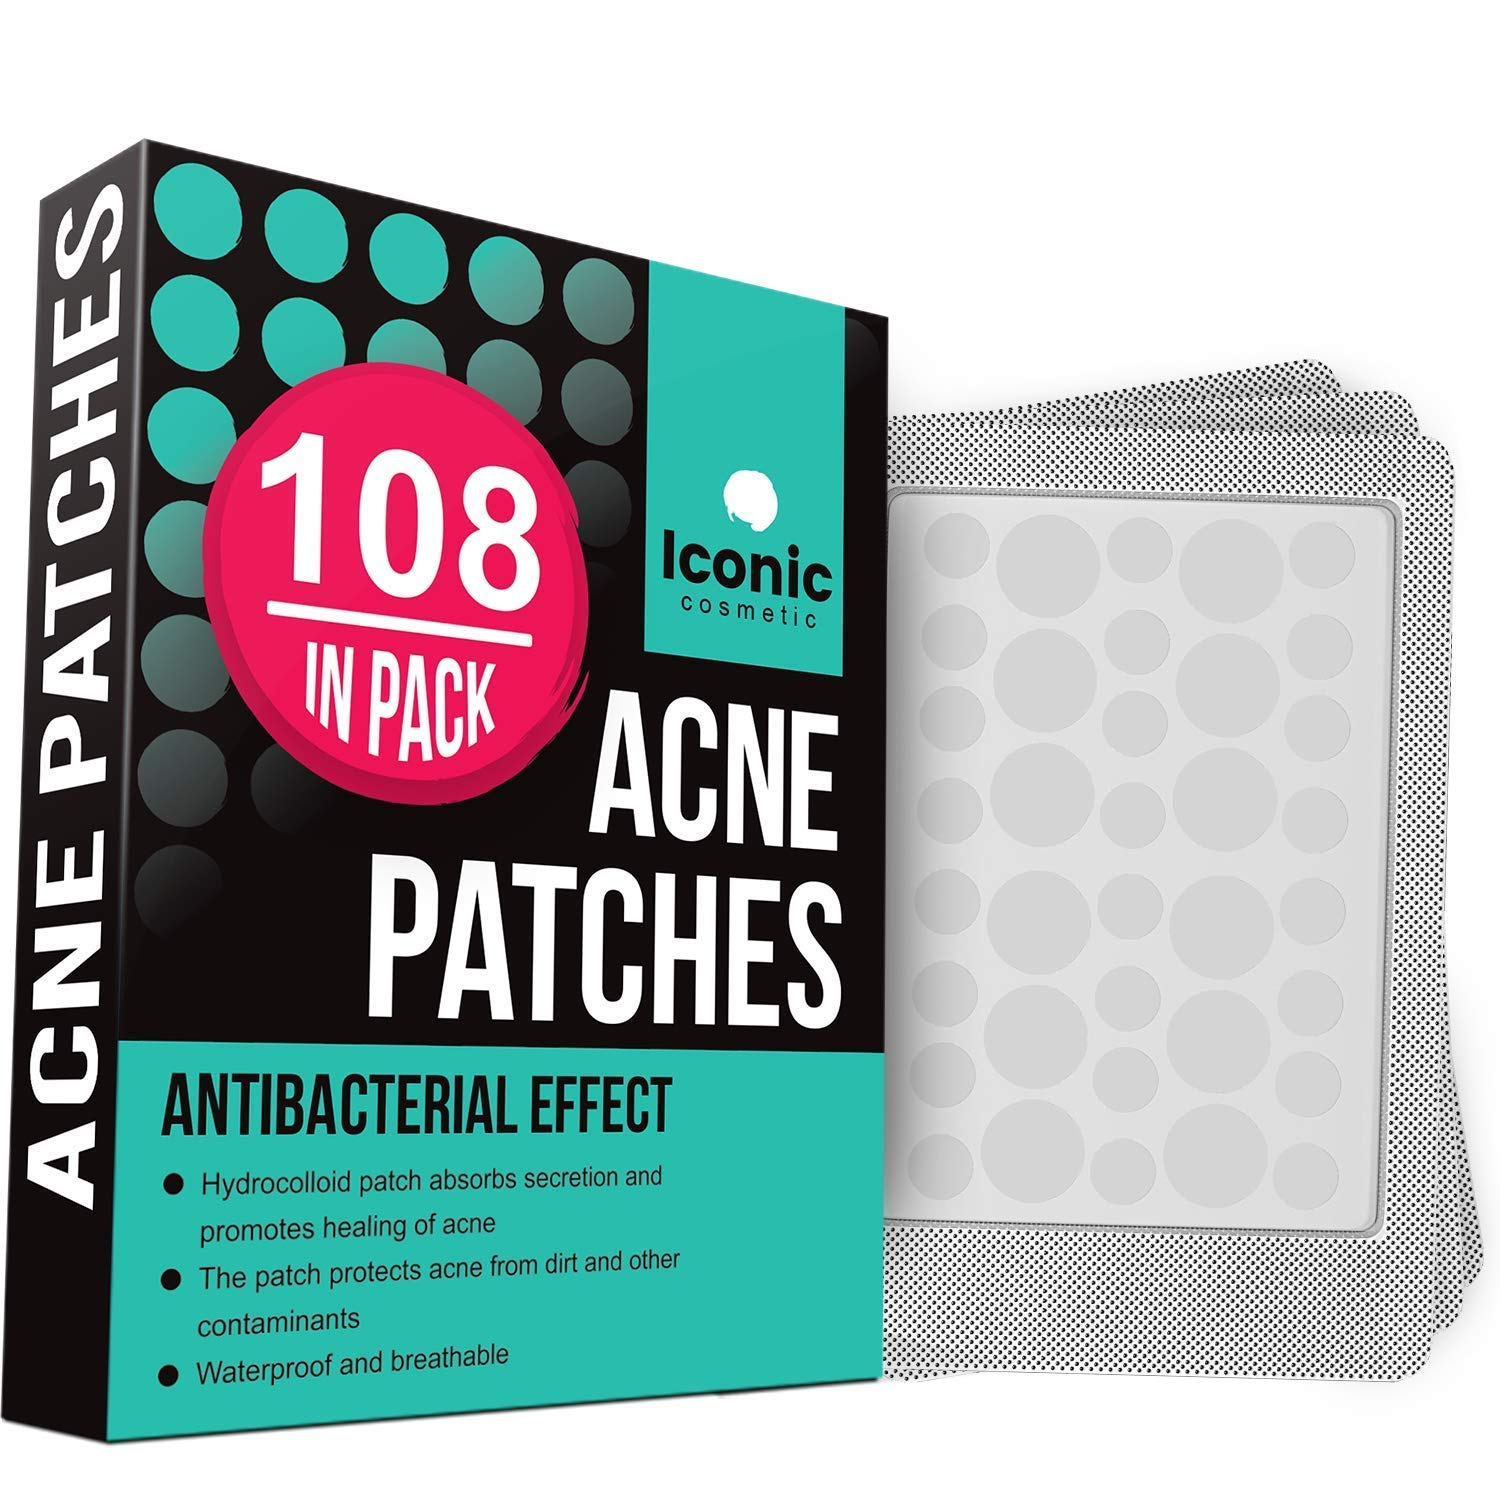 ICONIC Acne Pimple Healing Patch - Absorbing Cover, Invisible, Blemish Spot, Hydrocolloid, Skin Treatment, Facial Stickers, Two Sizes, Blends in with skin (108 Patches) by iconic